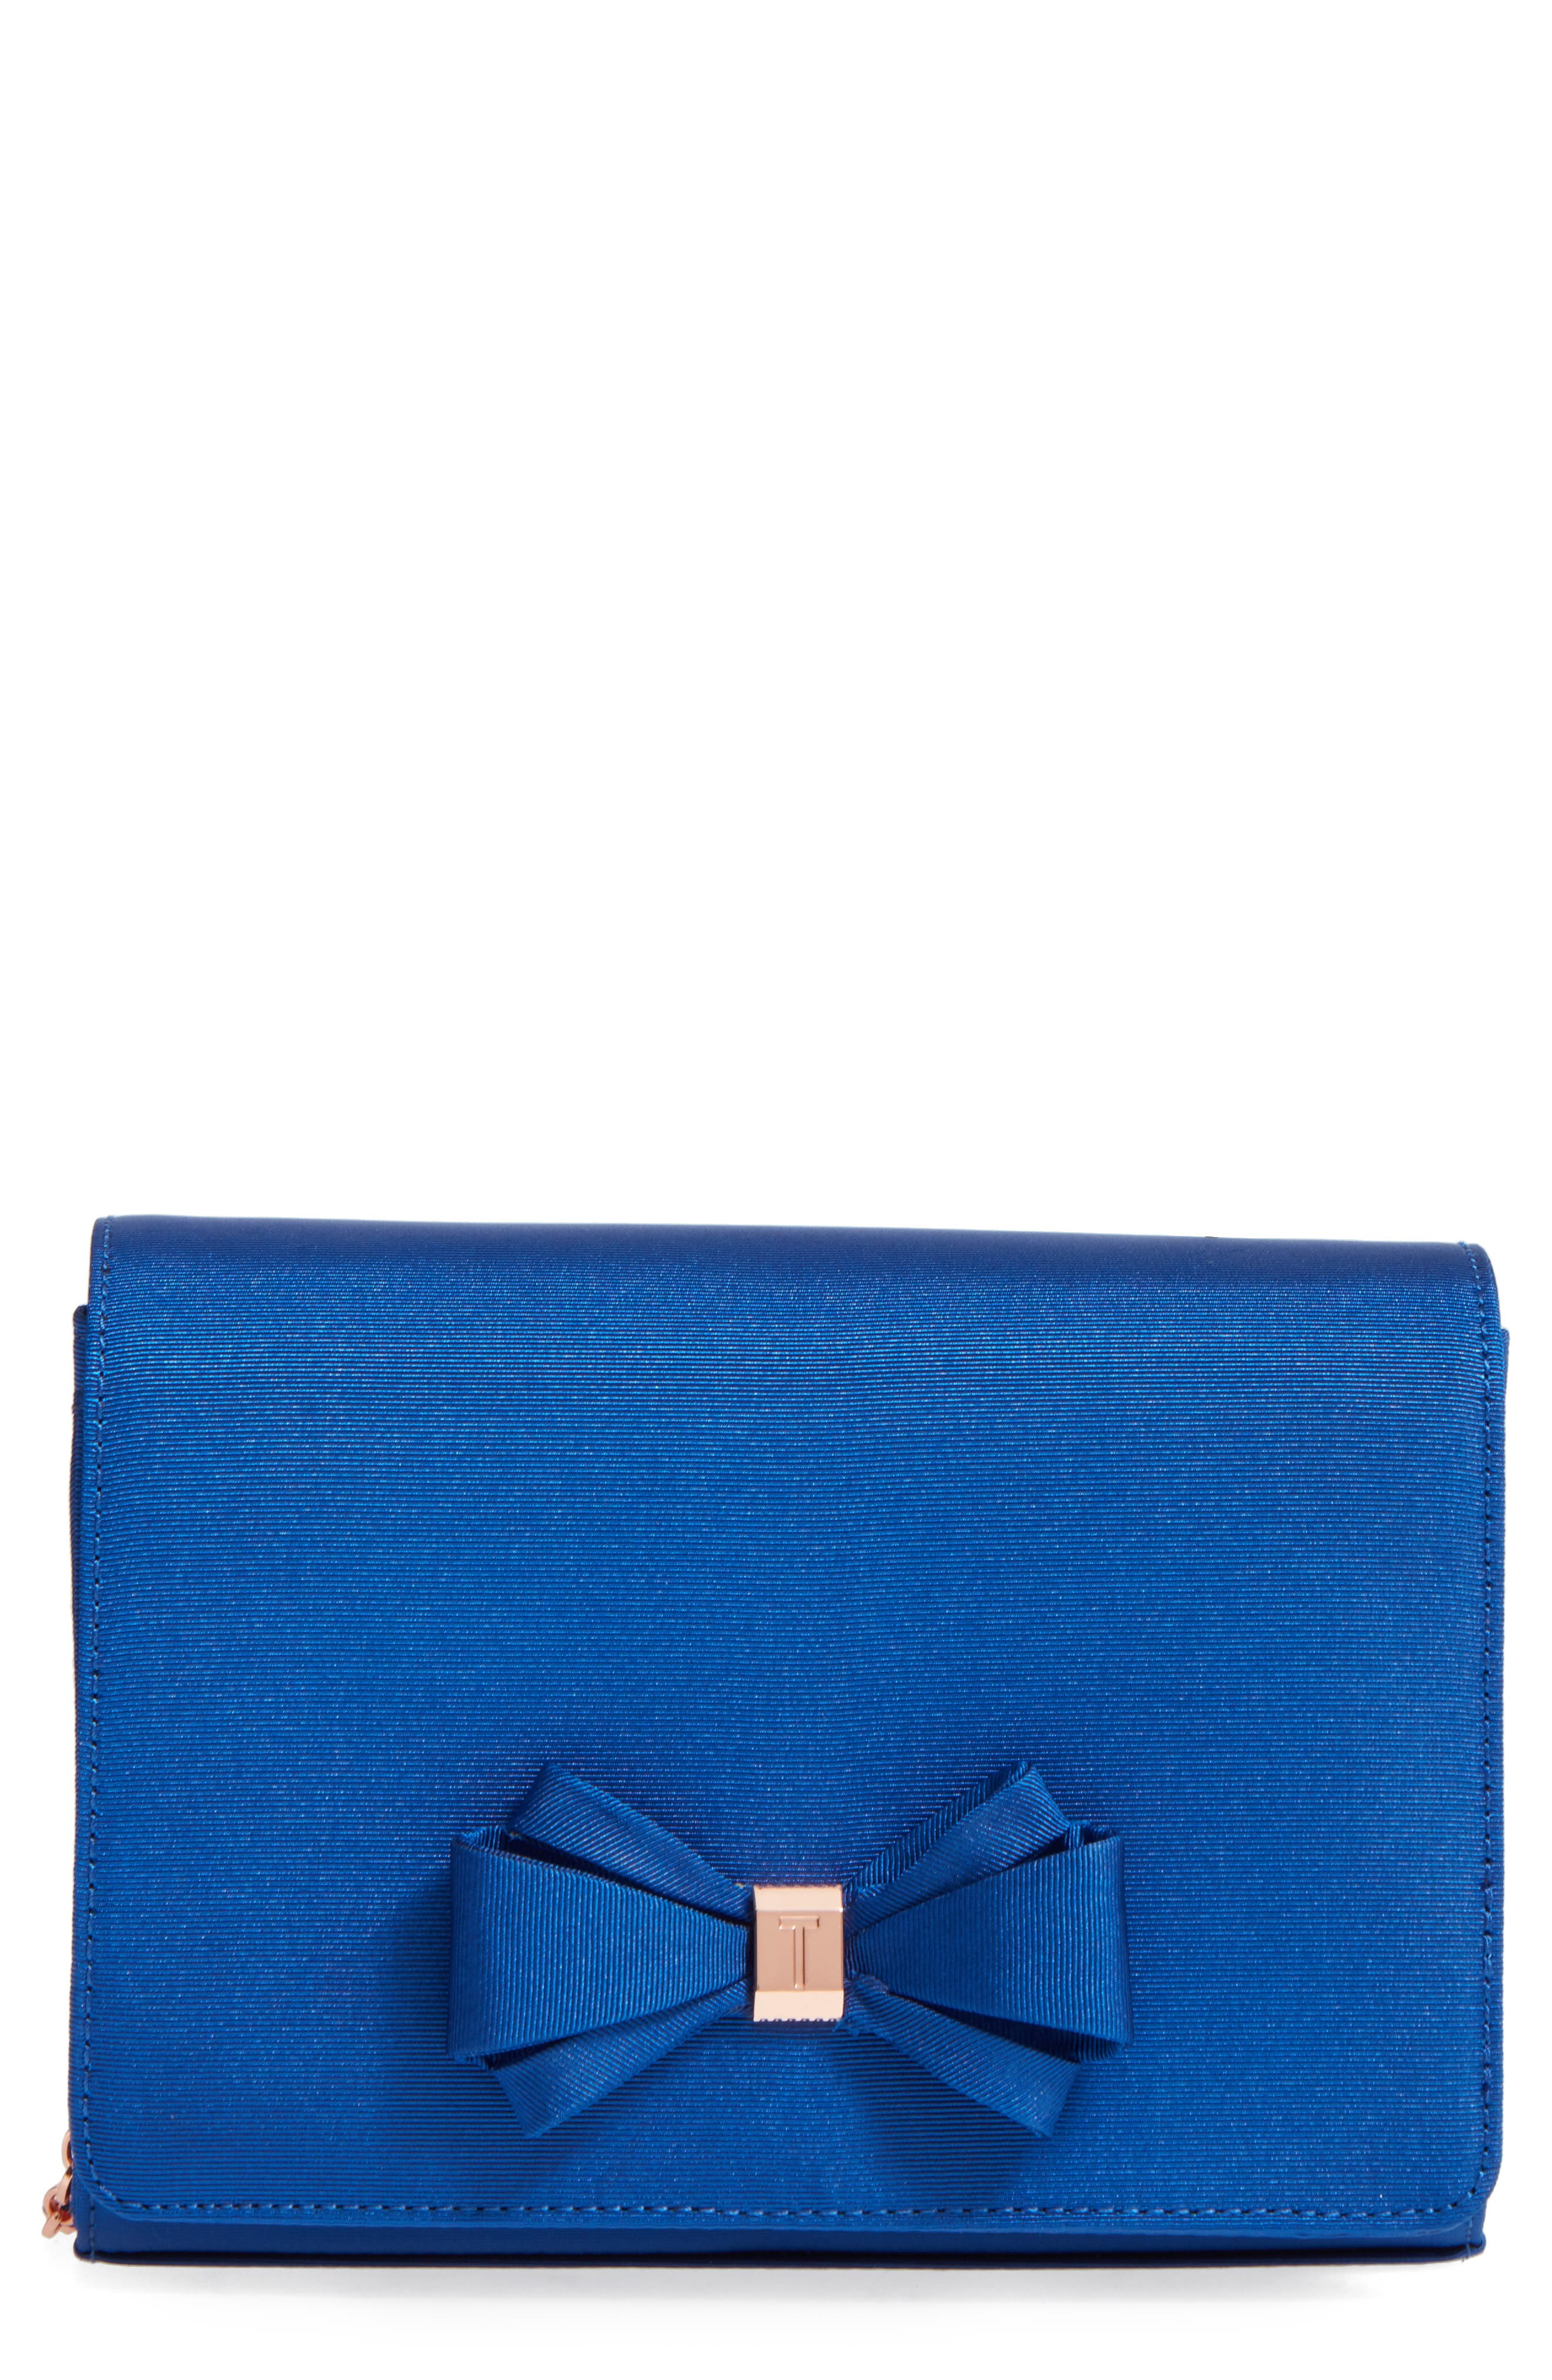 Main Image - Ted Baker London Bow Clutch